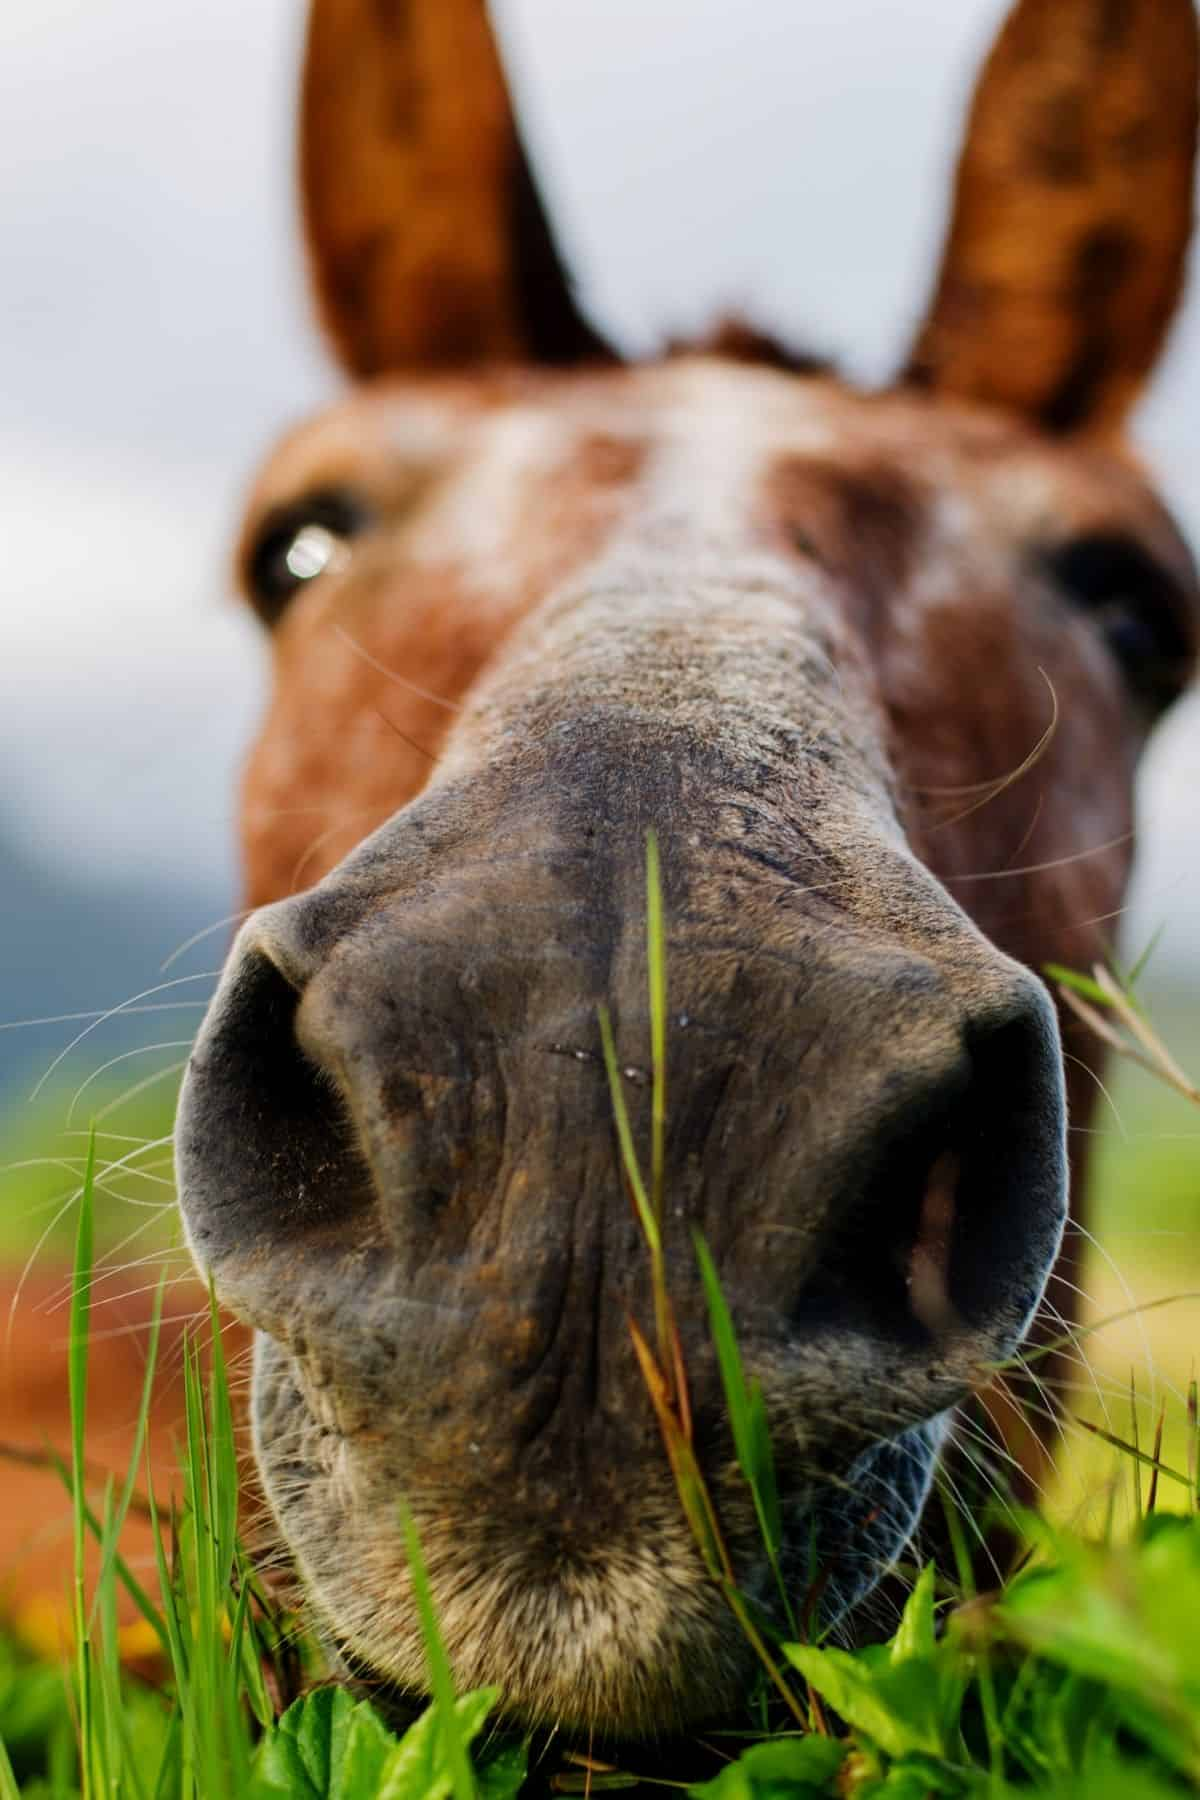 Close up horse face eating grass